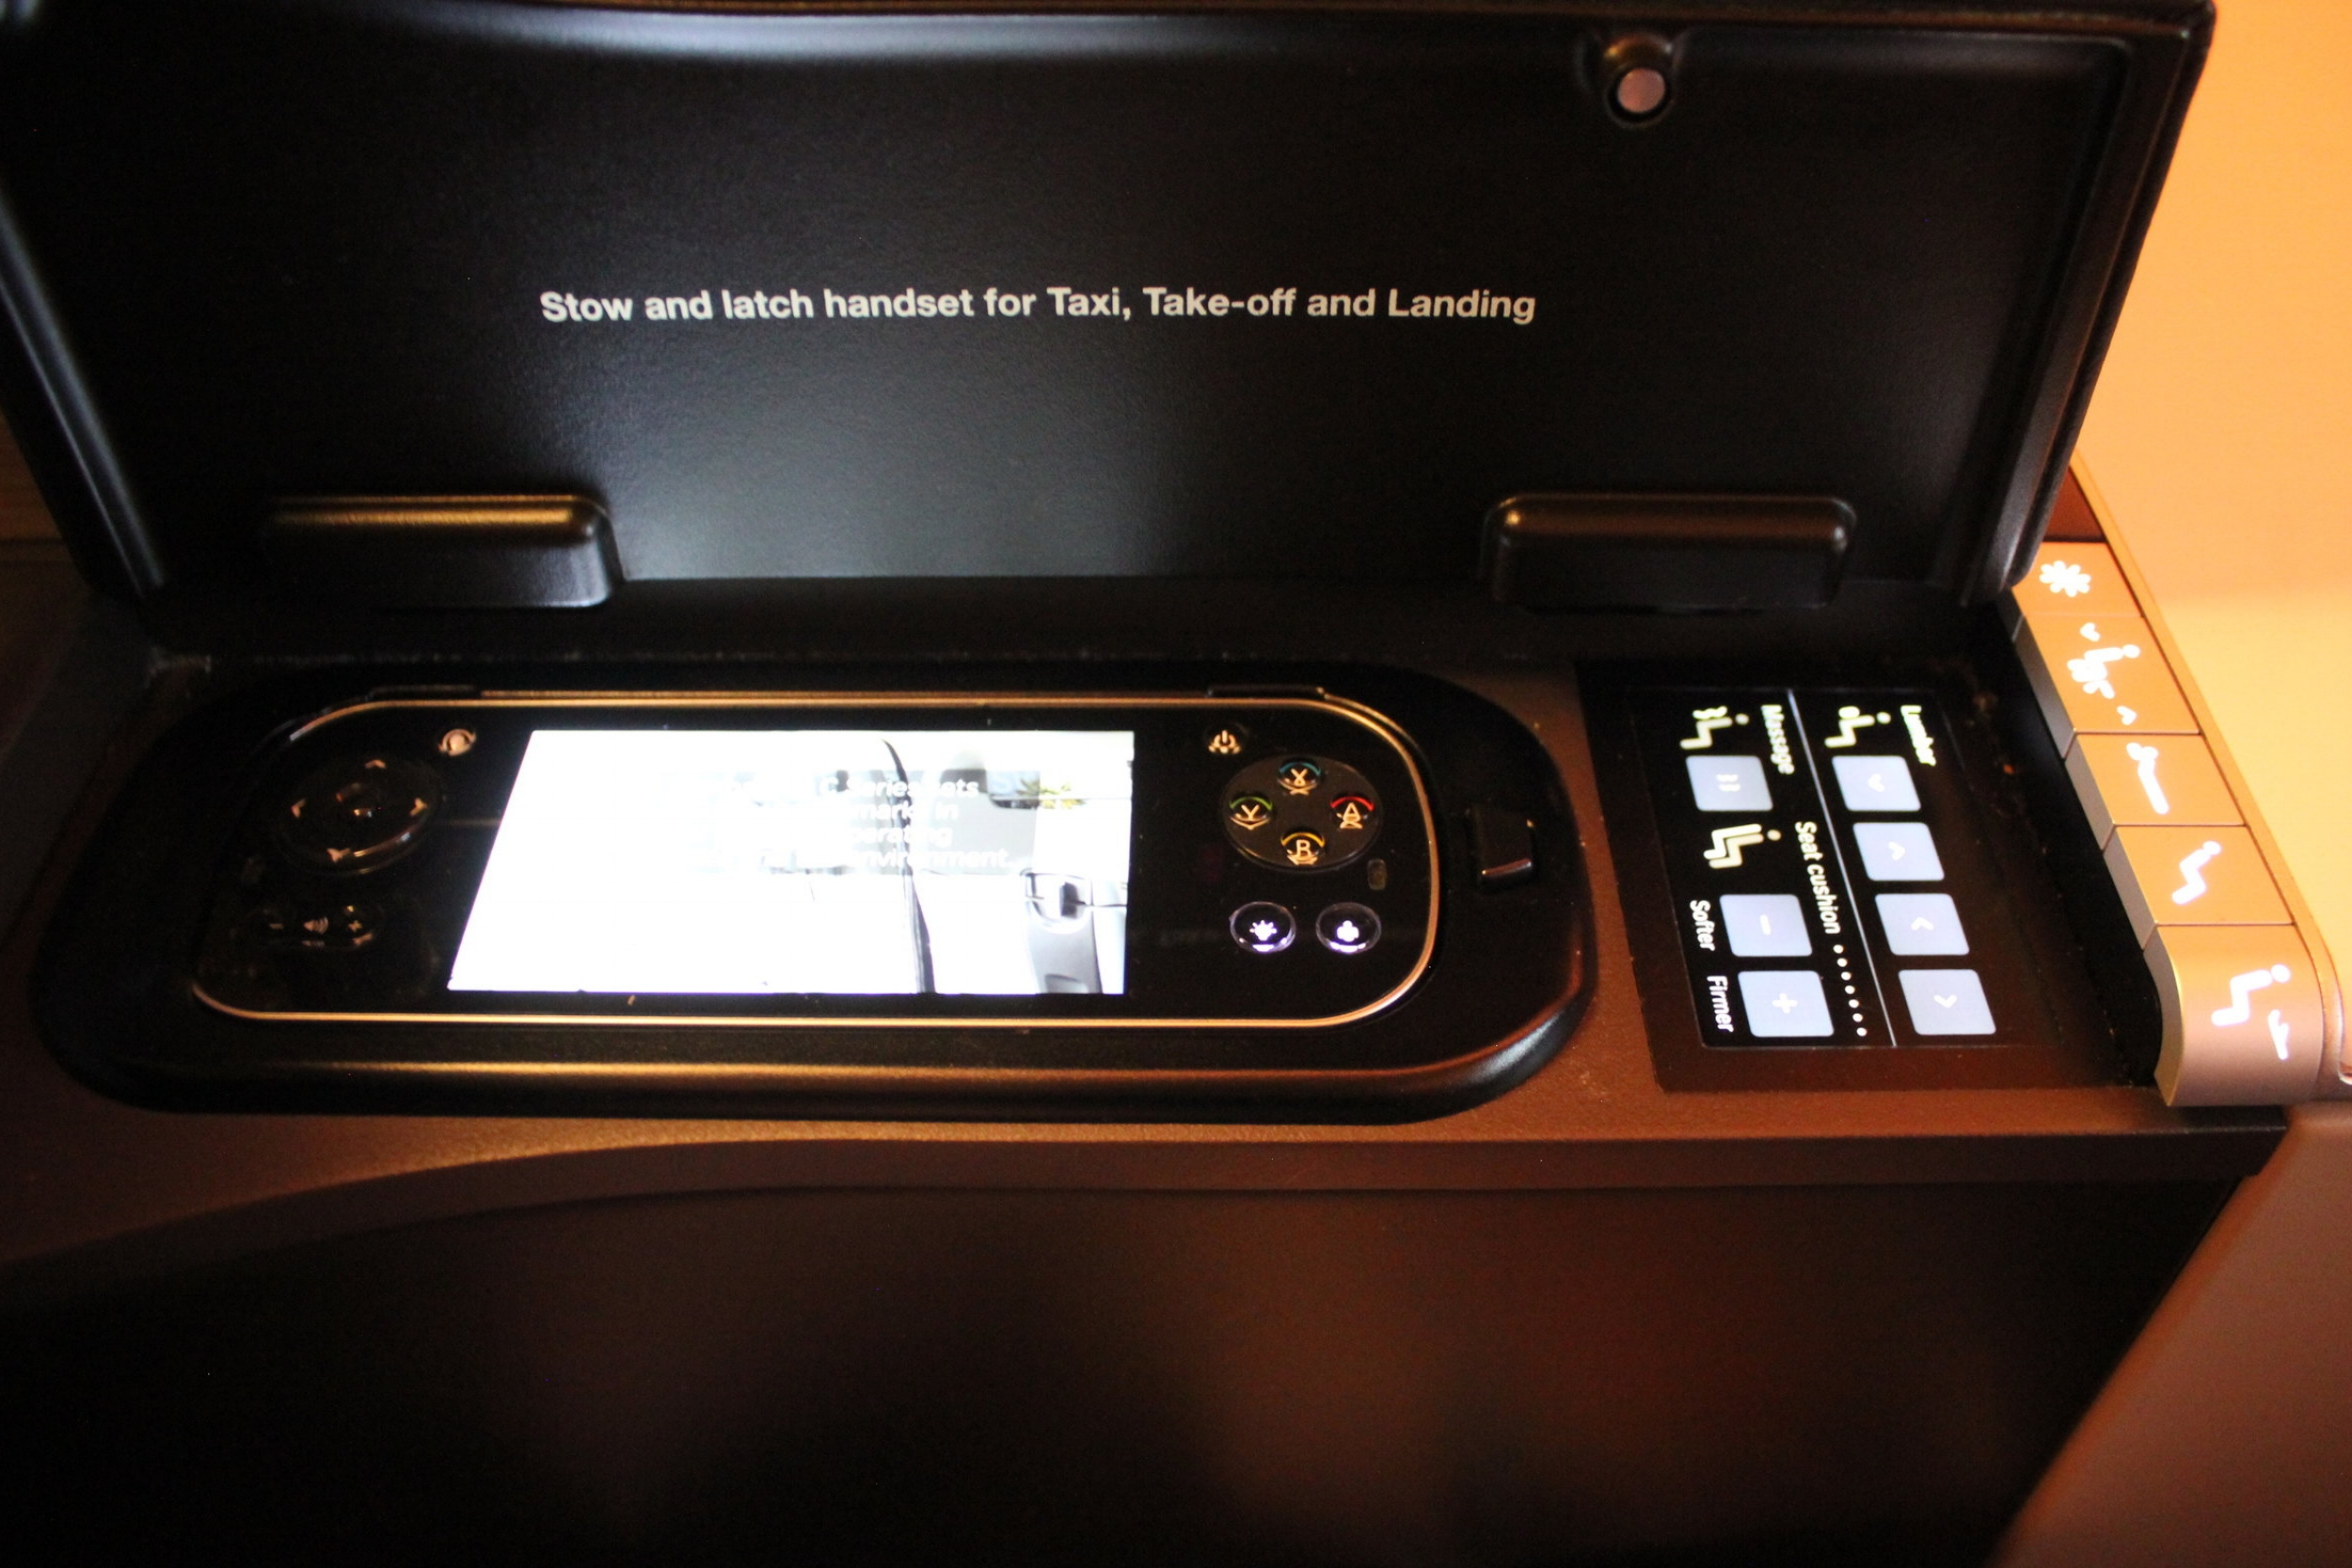 Swiss 777 business class – Seat and entertainment controls